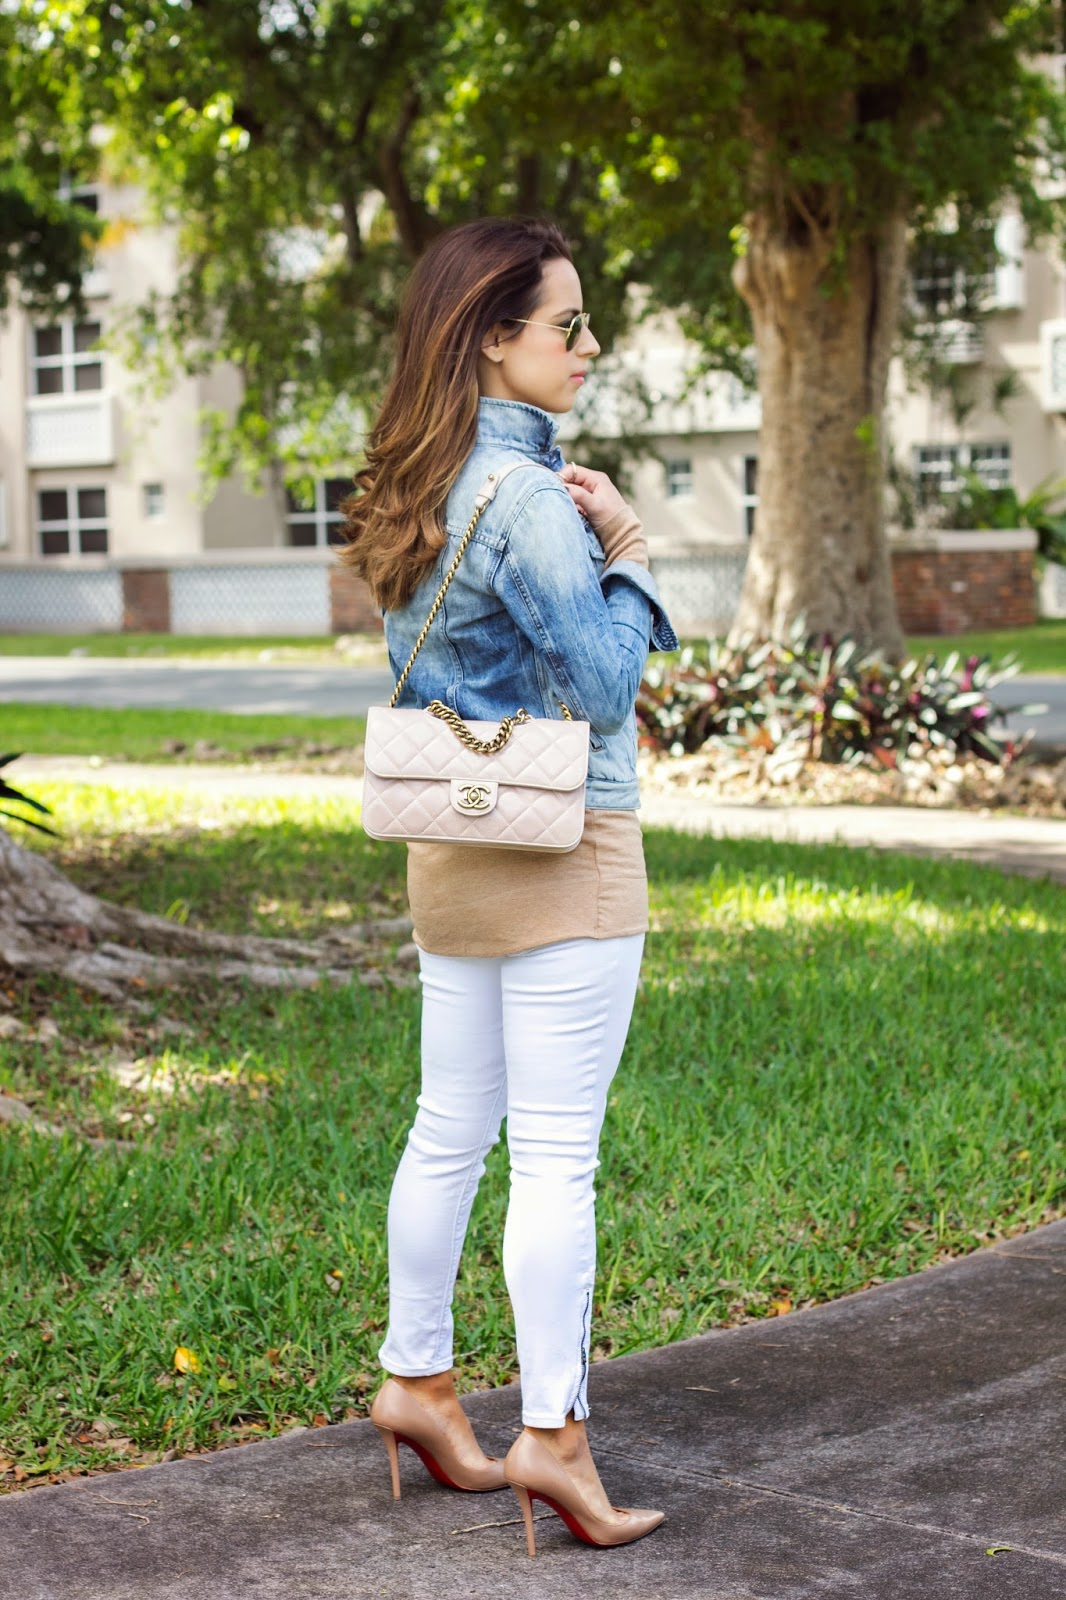 Miami Winter White Jeans Kelly Saks